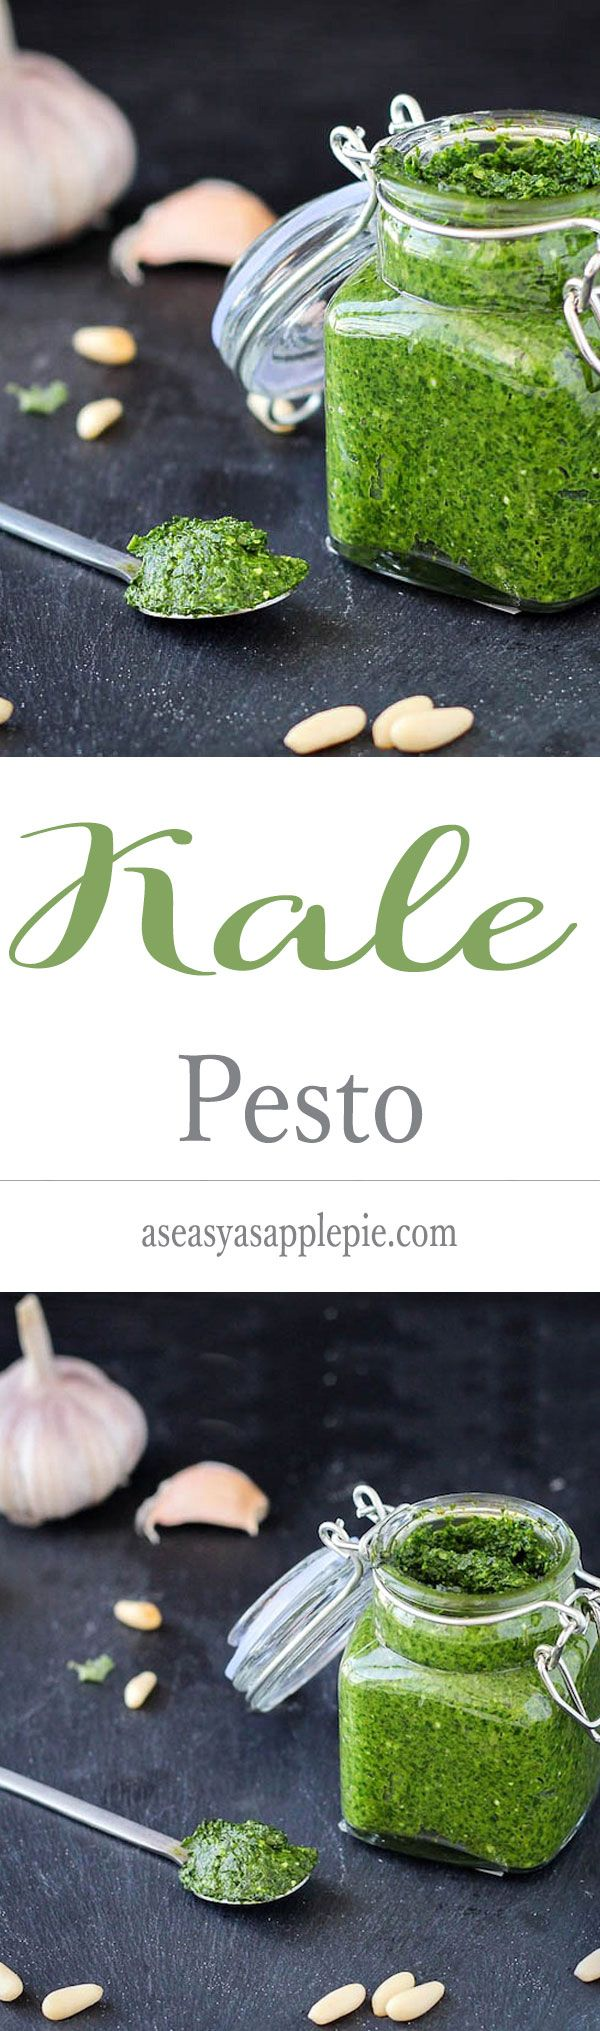 Kale Pesto ~ A variation of the classic basil pesto, featuring superstar kale! ~ from As Easy As Apple Pie